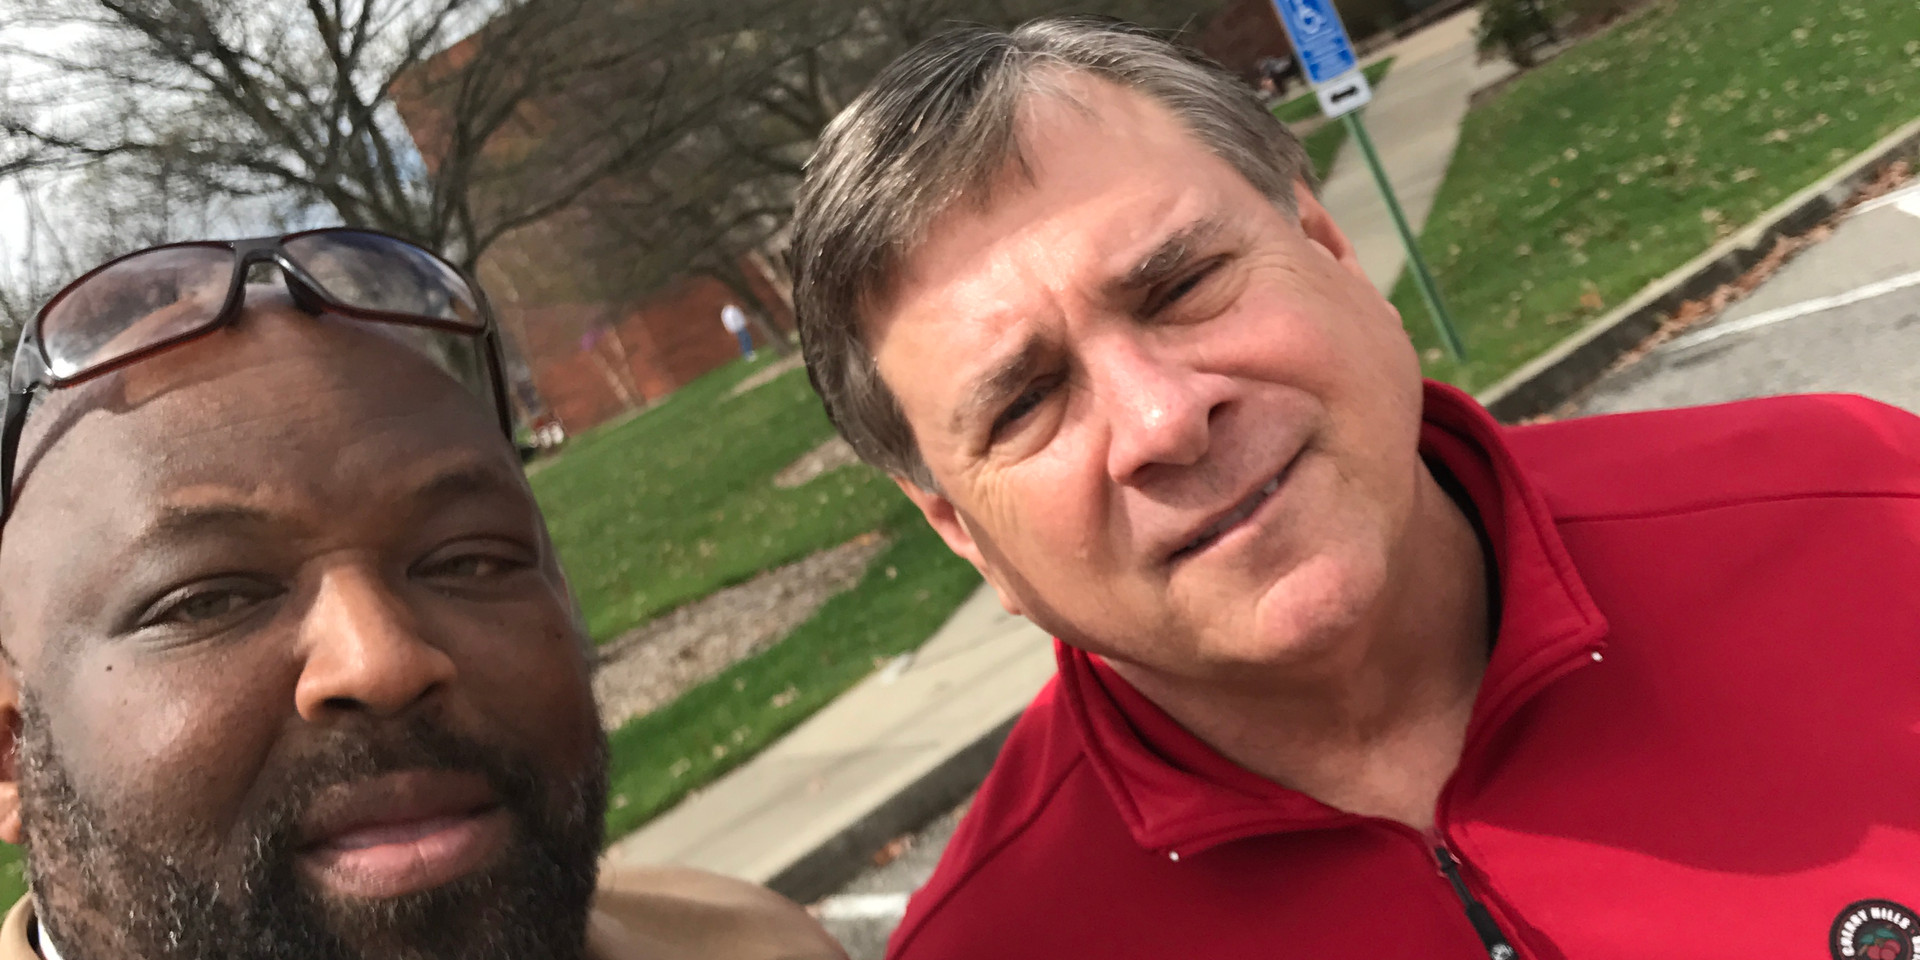 J. Linton and UL AD Tom Jurich